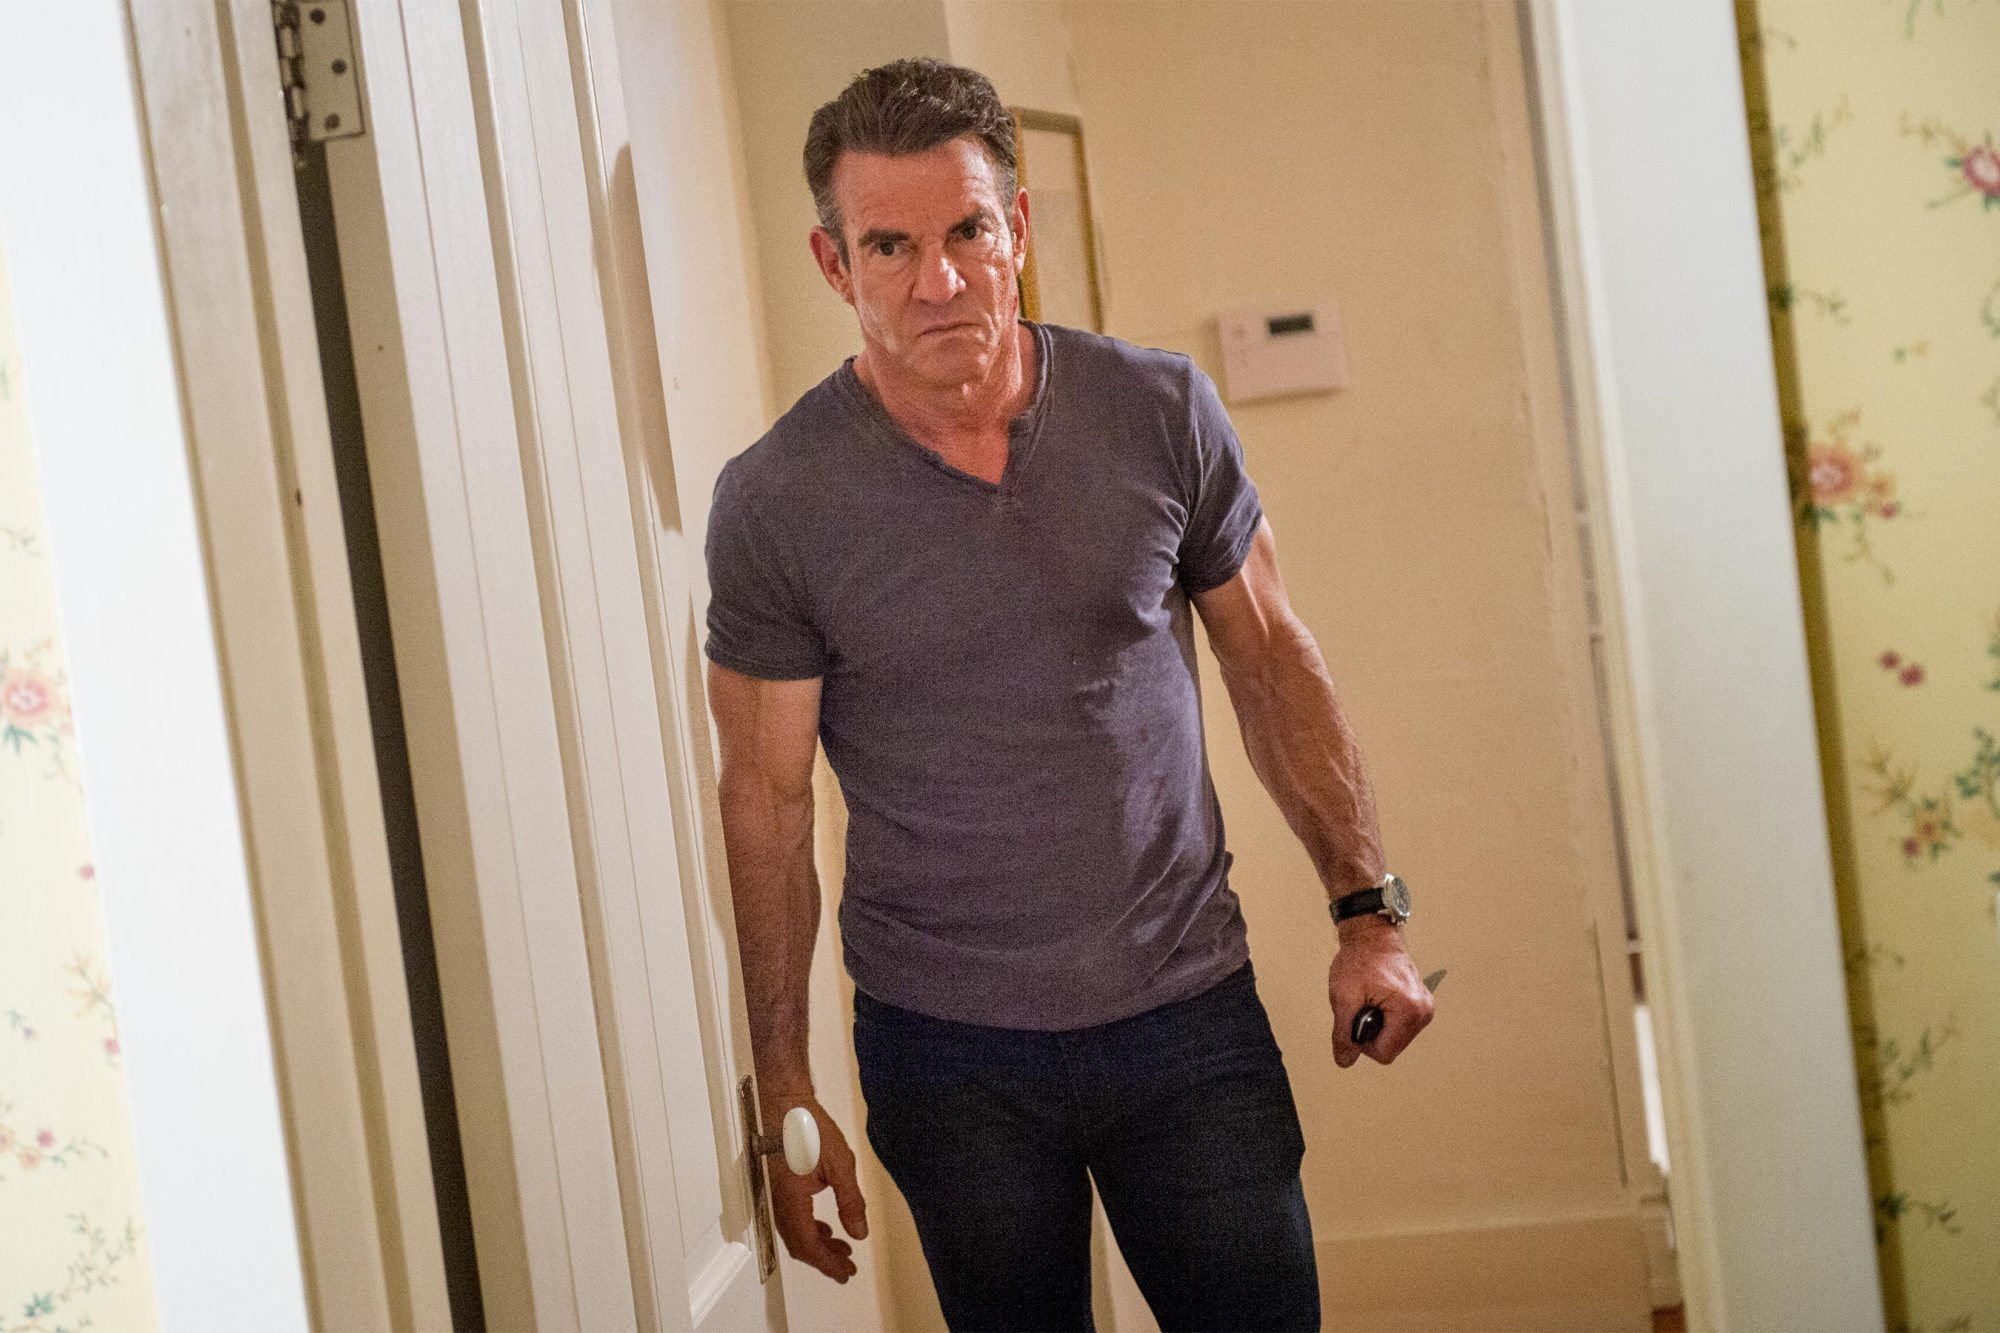 THE INTRUDER Dennis Quaid CR: Serguei Baschlakov/Sony